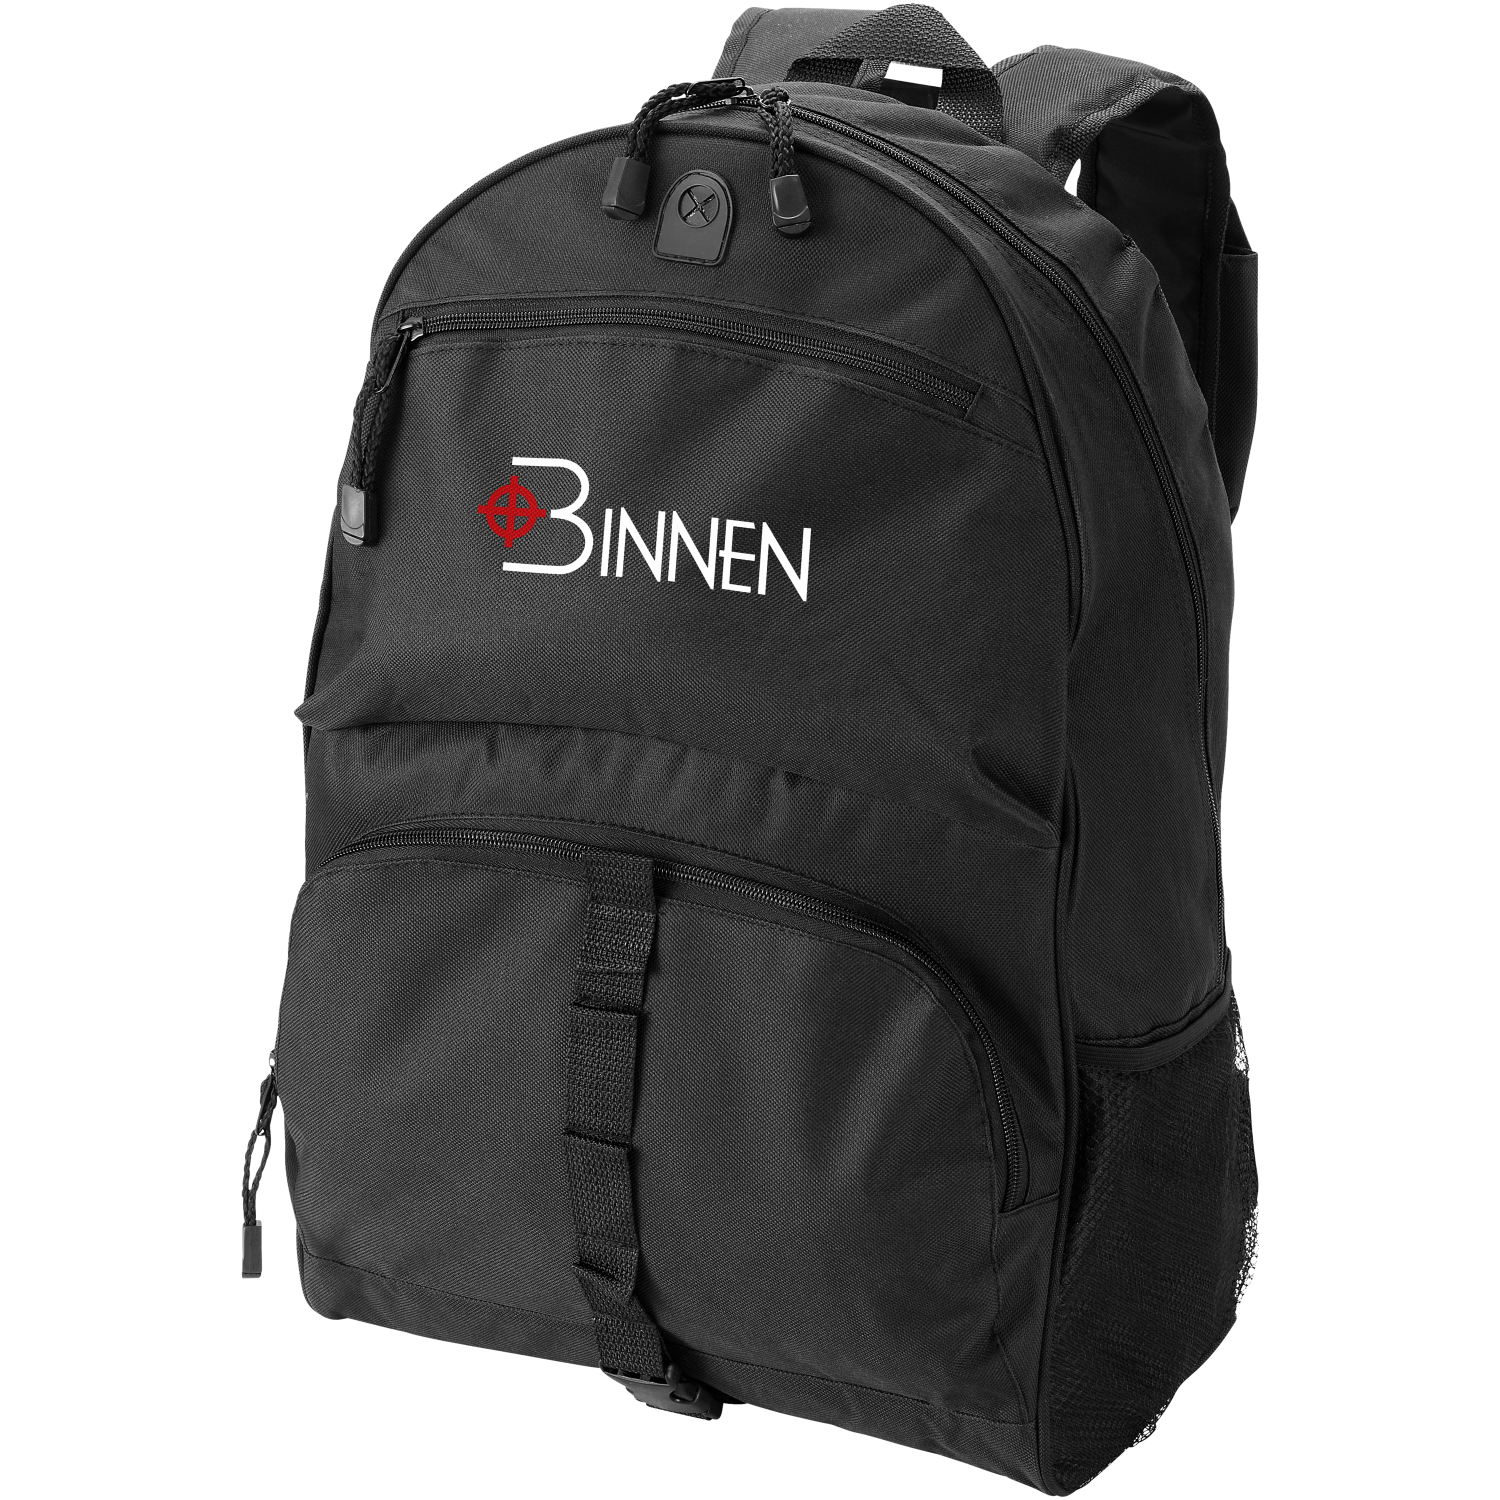 Utah Backpack